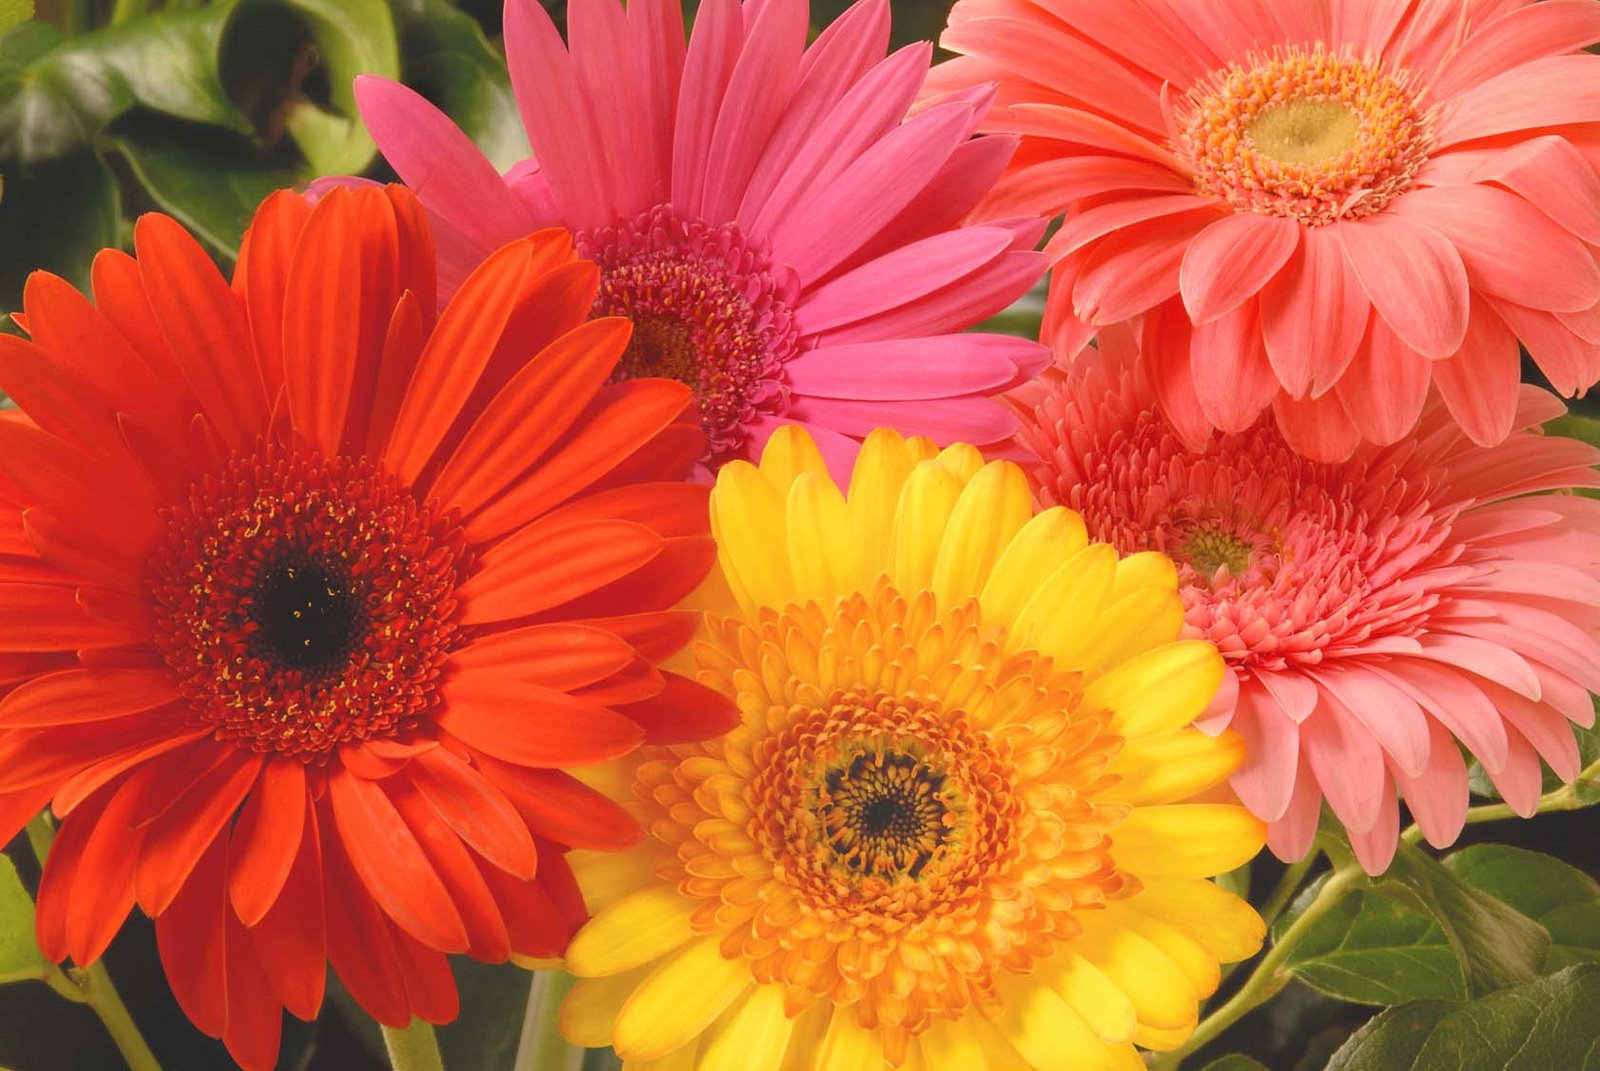 Canada Floral Delivery Blog: A Few Facts About Gerbera Daisies